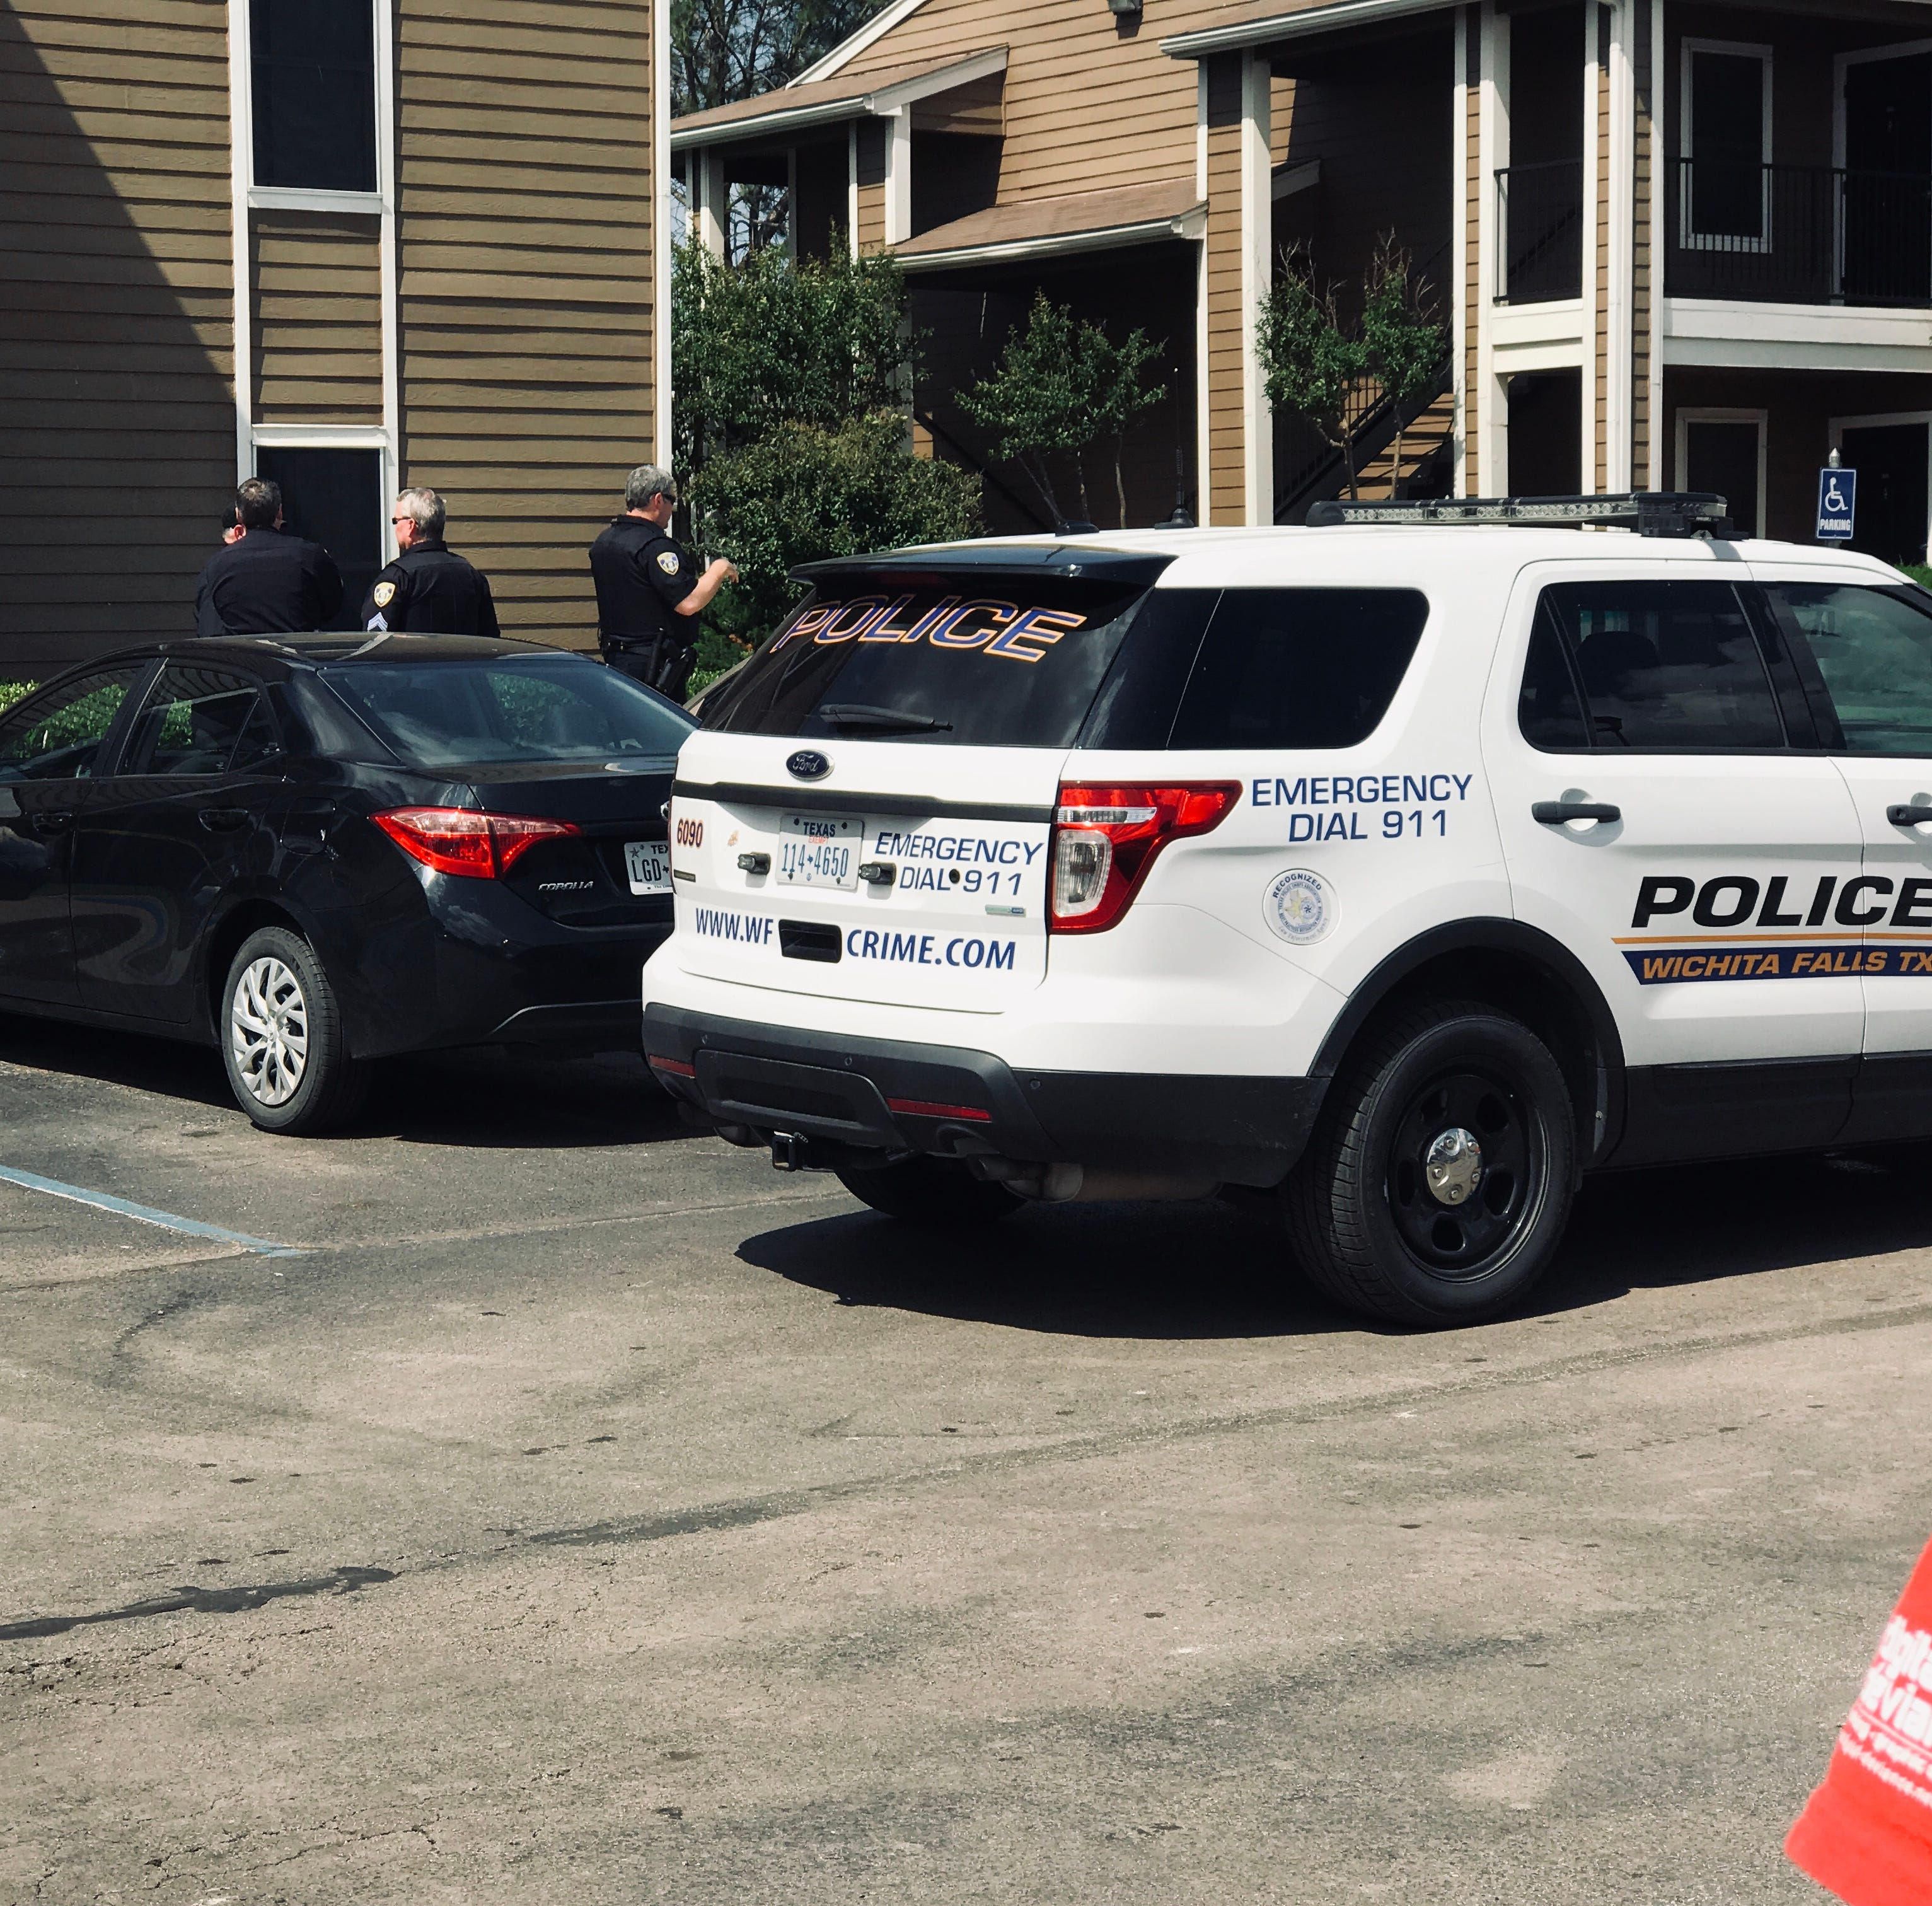 Suspect at large after shooting in Wichita Falls; victim wounded multiple times